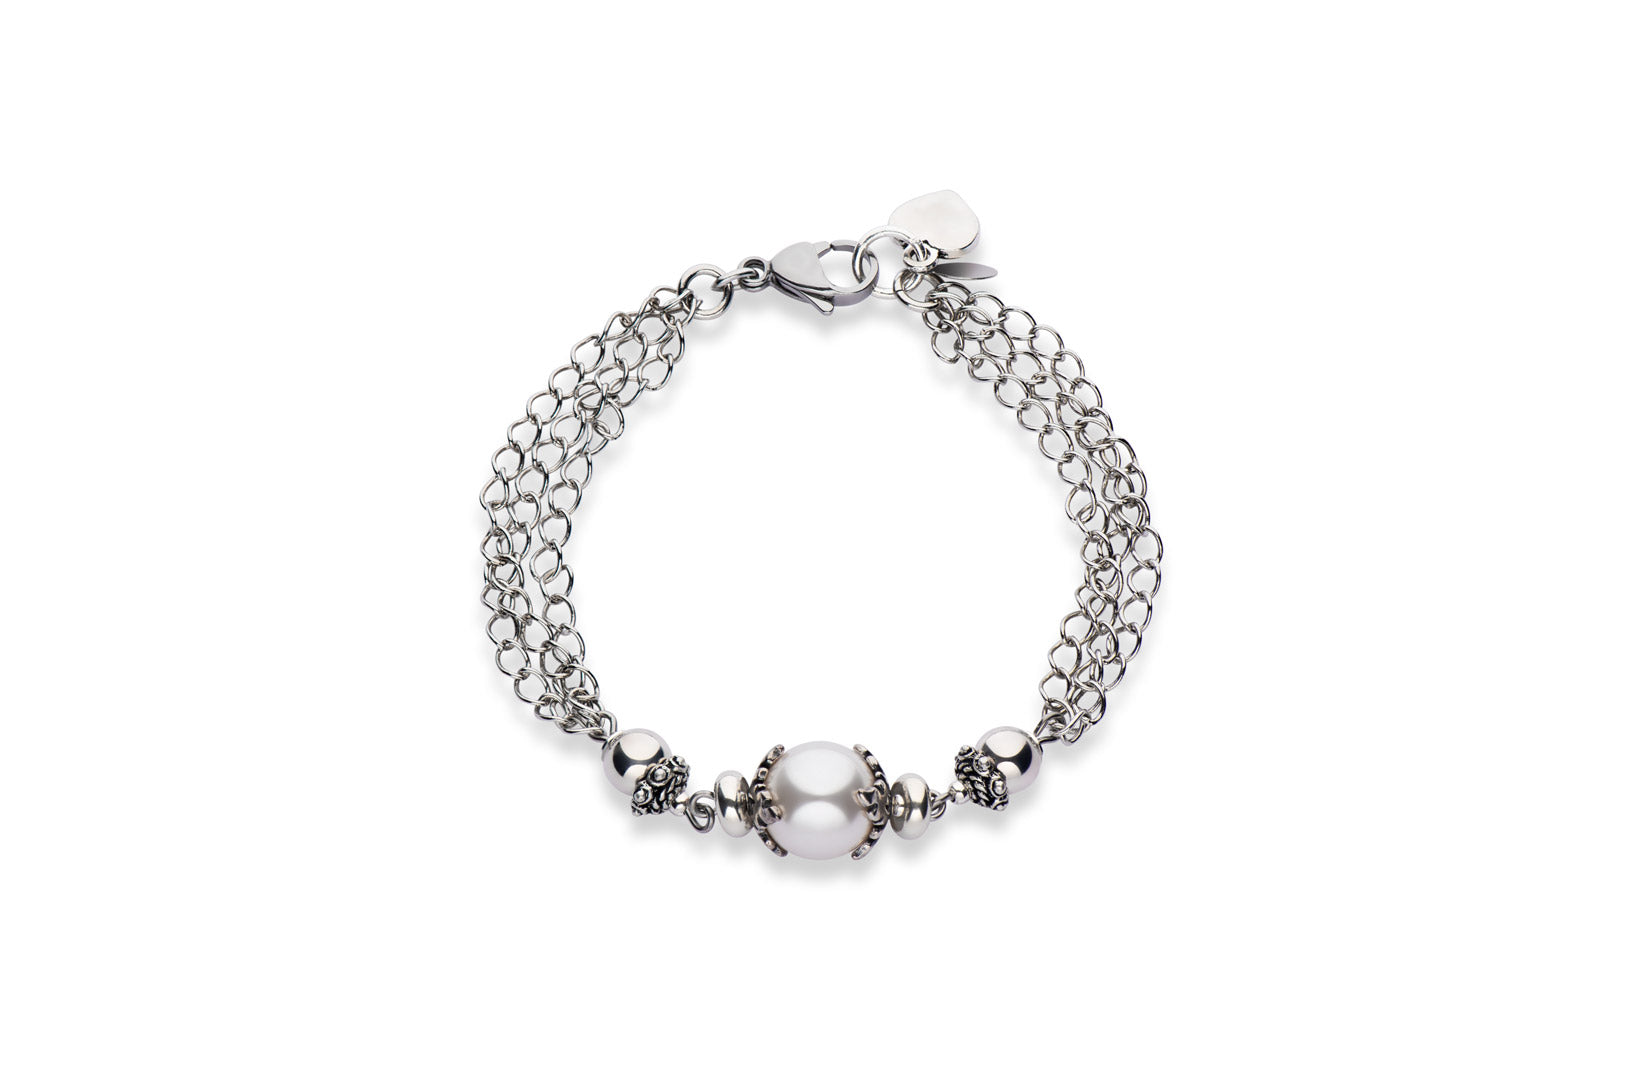 Sterling silver and Swarovski crystal pearl bracelet